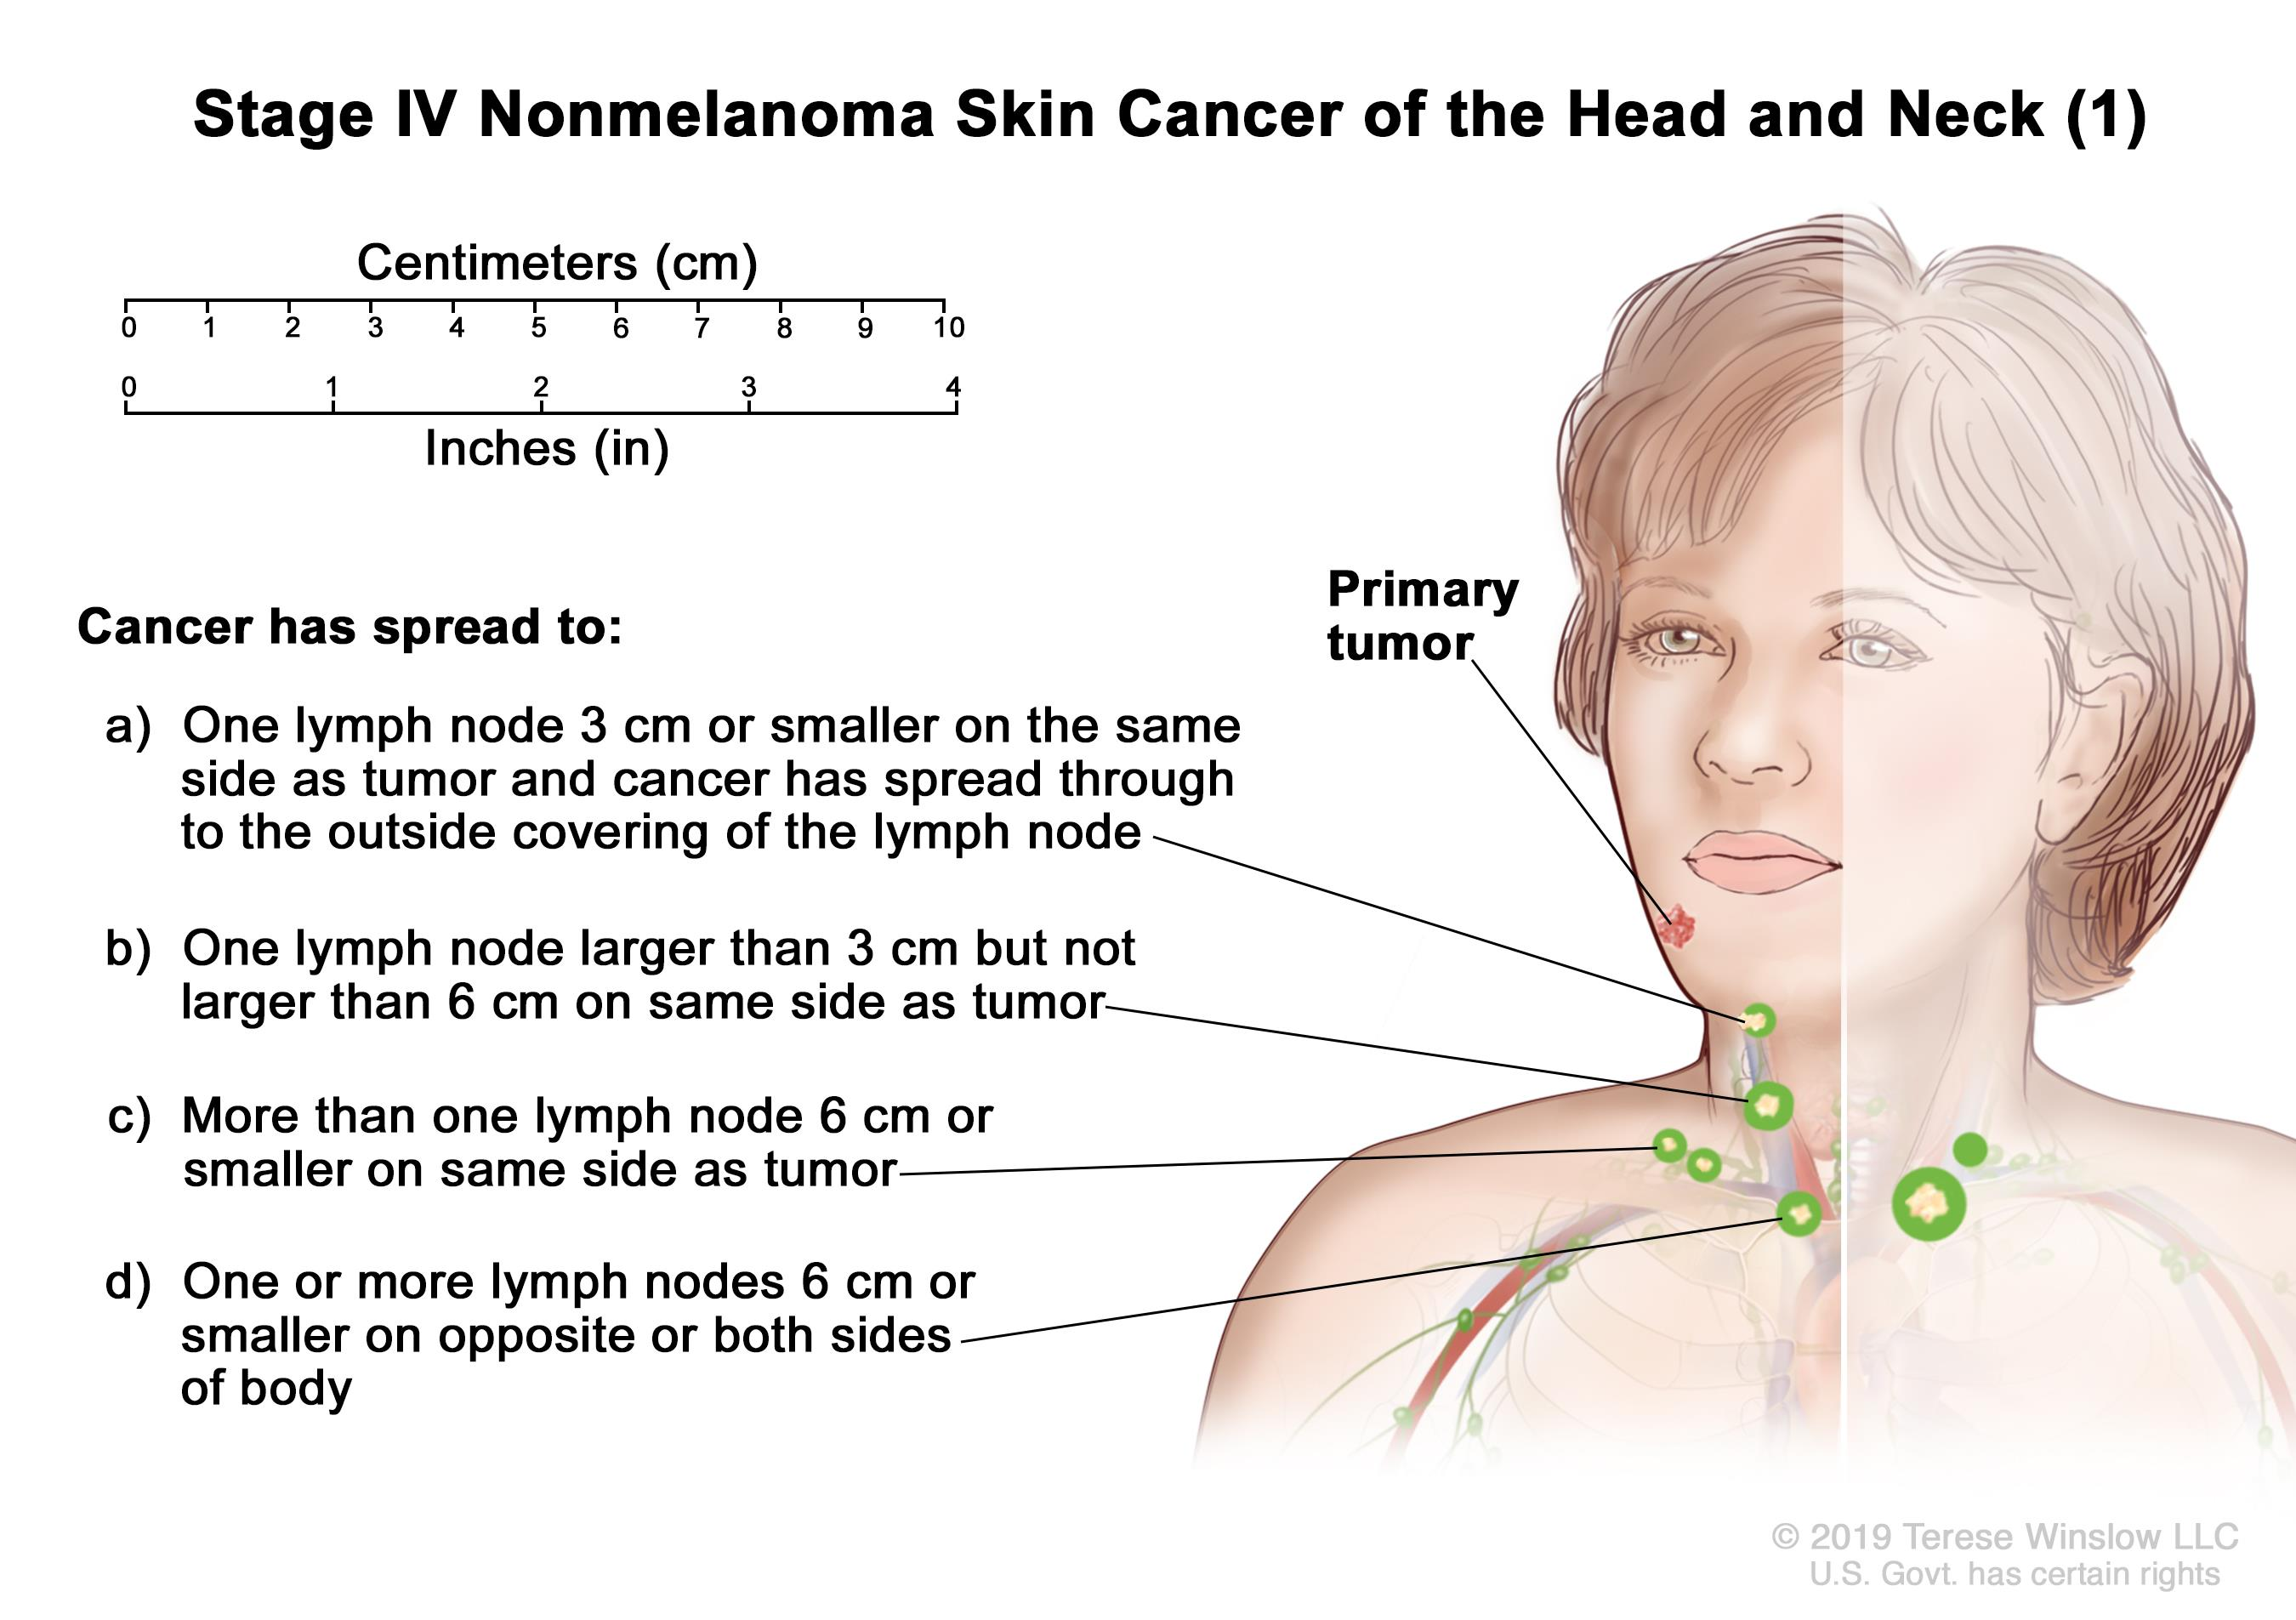 Stage IV nonmelanoma skin cancer of the head and neck (1); drawing shows a primary tumor on the face and cancer that has spread to: (a) one lymph node on the same side of the body as the tumor, the node is 3 centimeters or smaller, and cancer has spread through to the outside covering of the lymph node; (b) one lymph node on the same side of the body as the tumor and the node is larger than 3 centimeters but not larger than 6 centimeters; (c) more than one lymph node on the same side of the body as the tumor and the nodes are 6 centimeters or smaller; and (d) one or more lymph nodes on the opposite or both sides of the body as the tumor and the nodes are 6 centimeters or smaller. Also shown is a 10-centimeter ruler and a 4-inch ruler.